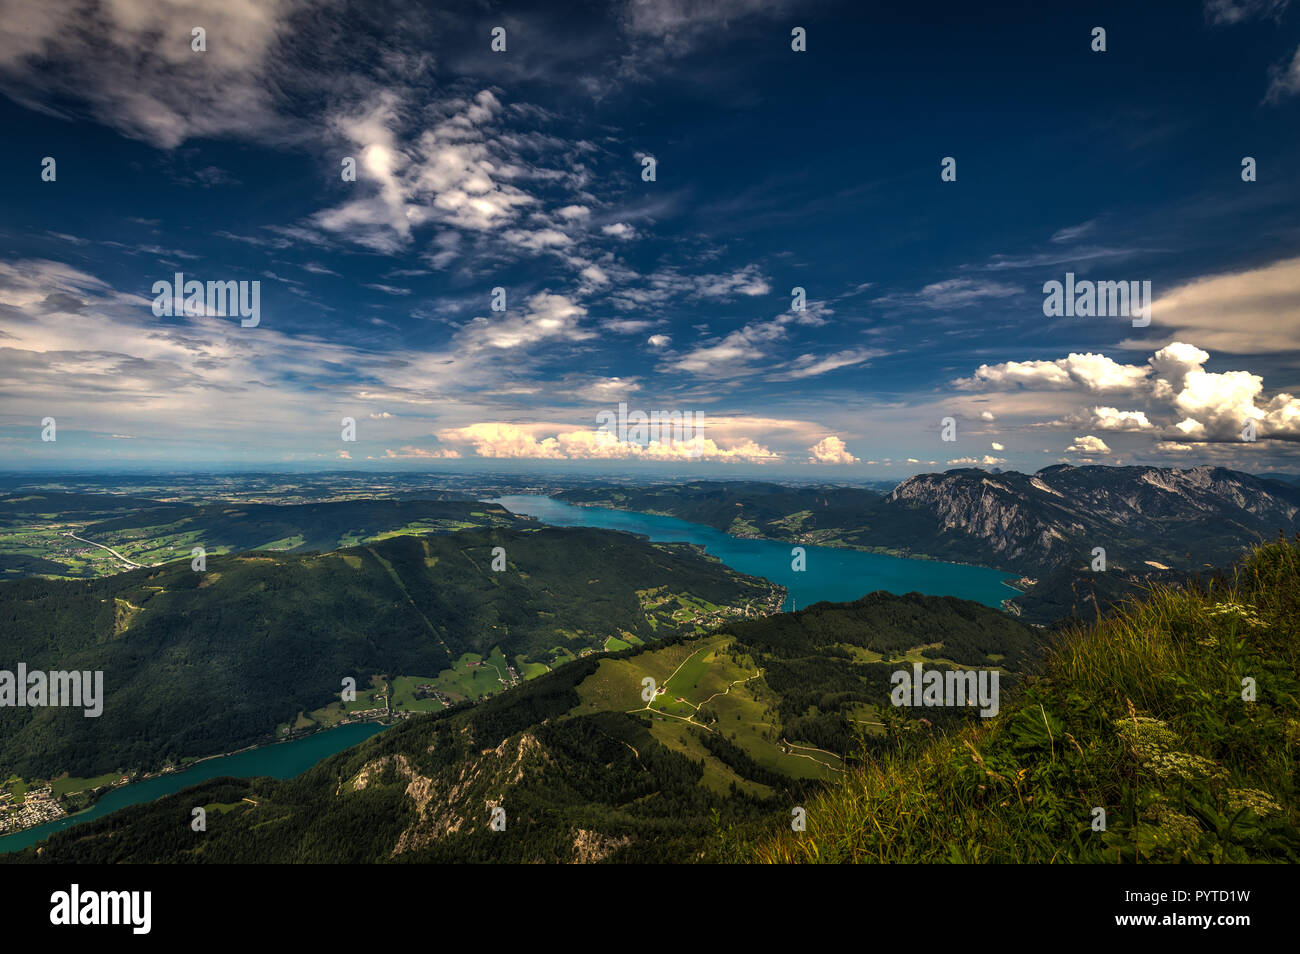 Mountain landscape on the top of the hiking trail to the Schafberg and view of beautiful landscape over the Attersee lake Stock Photo